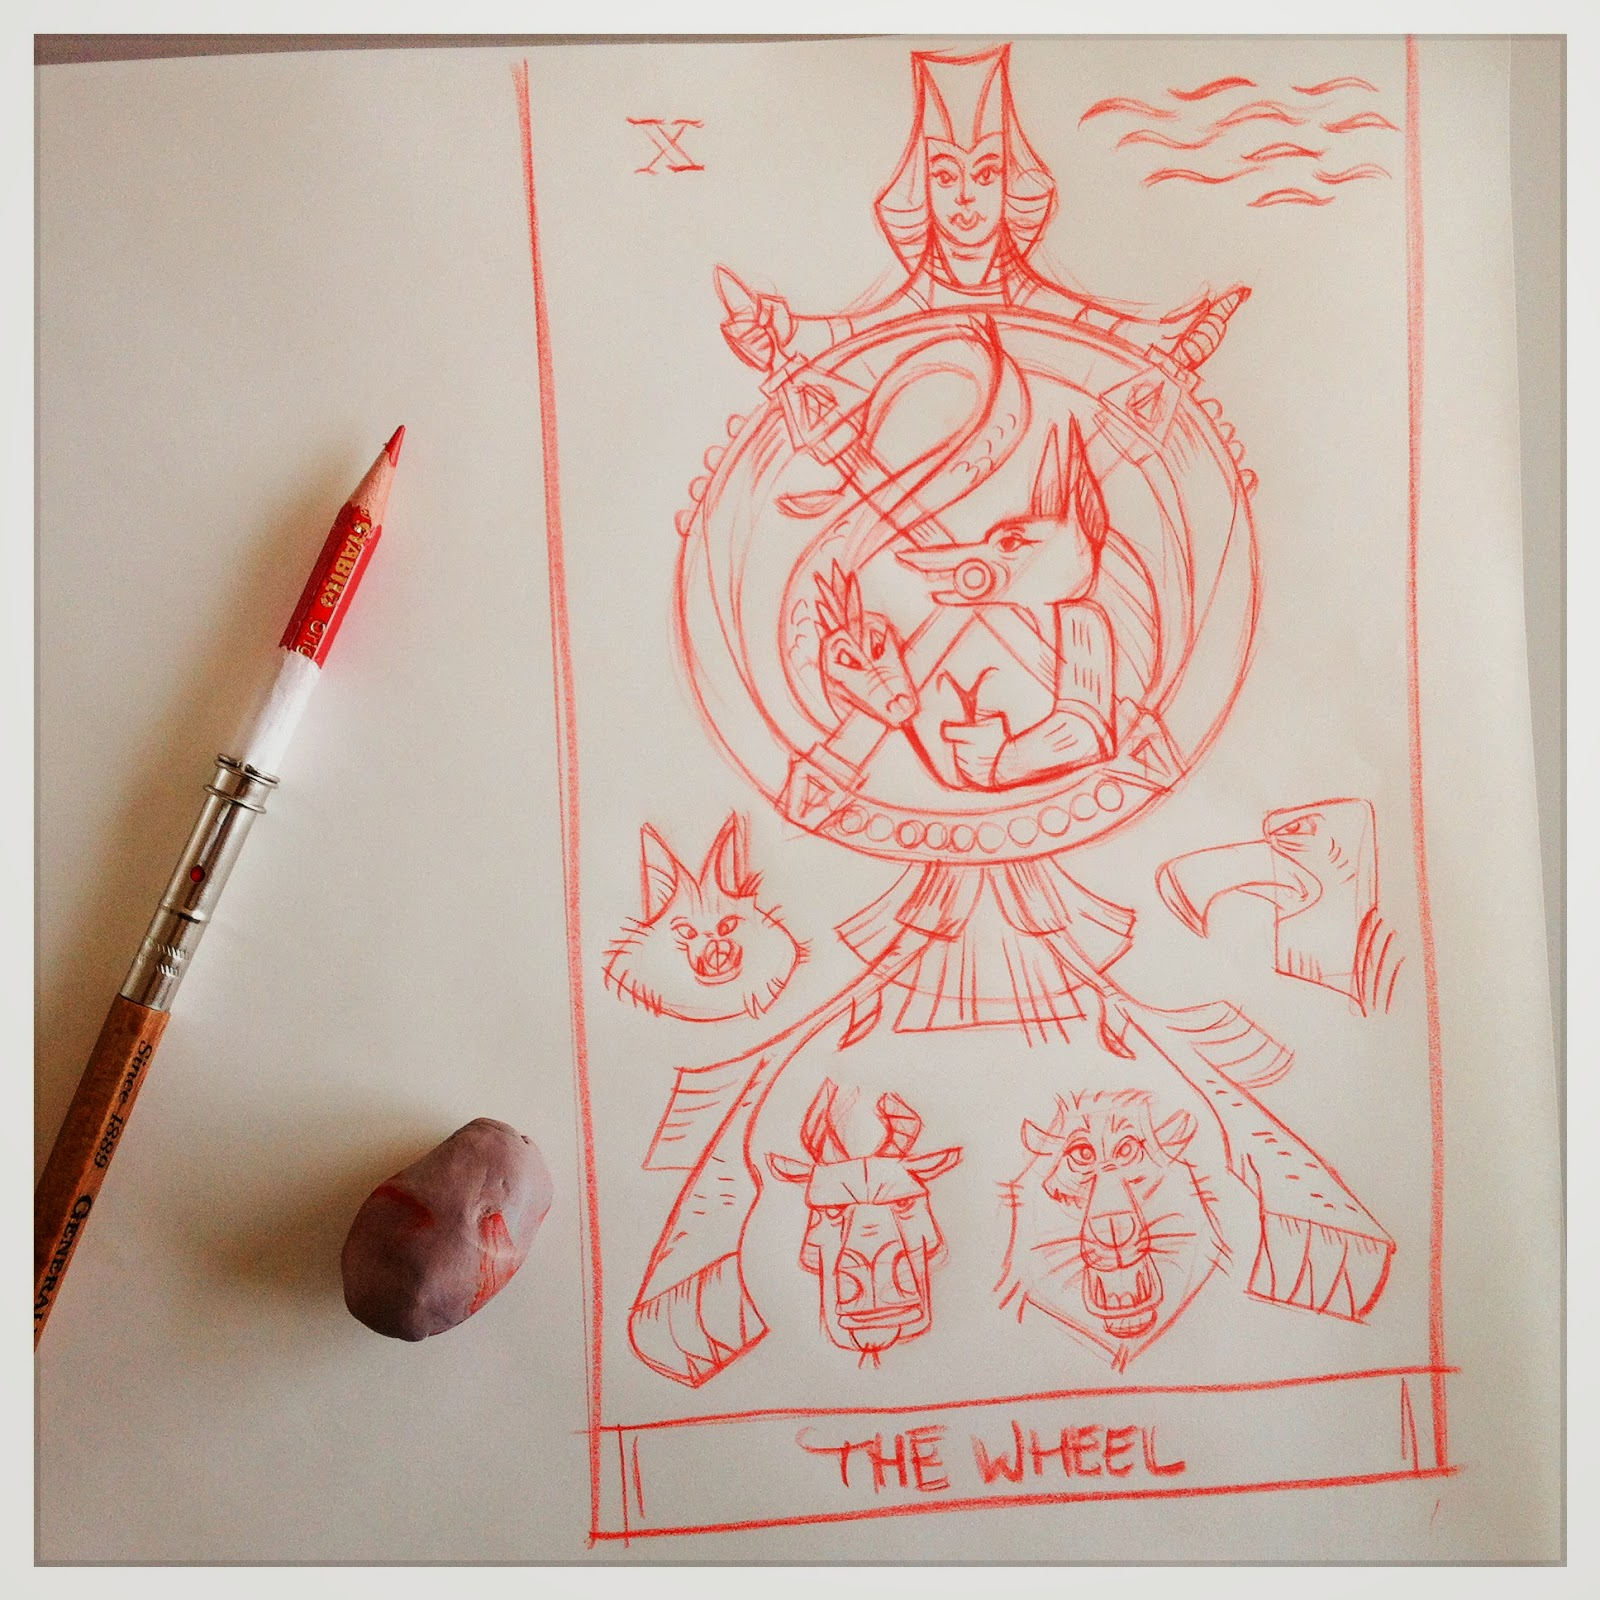 Design for: The Wheel -In the spirit of the tarot Marseille - red pencil sketch by Cesare Asaro - Curio & Co. (Curio and Co. OG - www.curioandco.com)